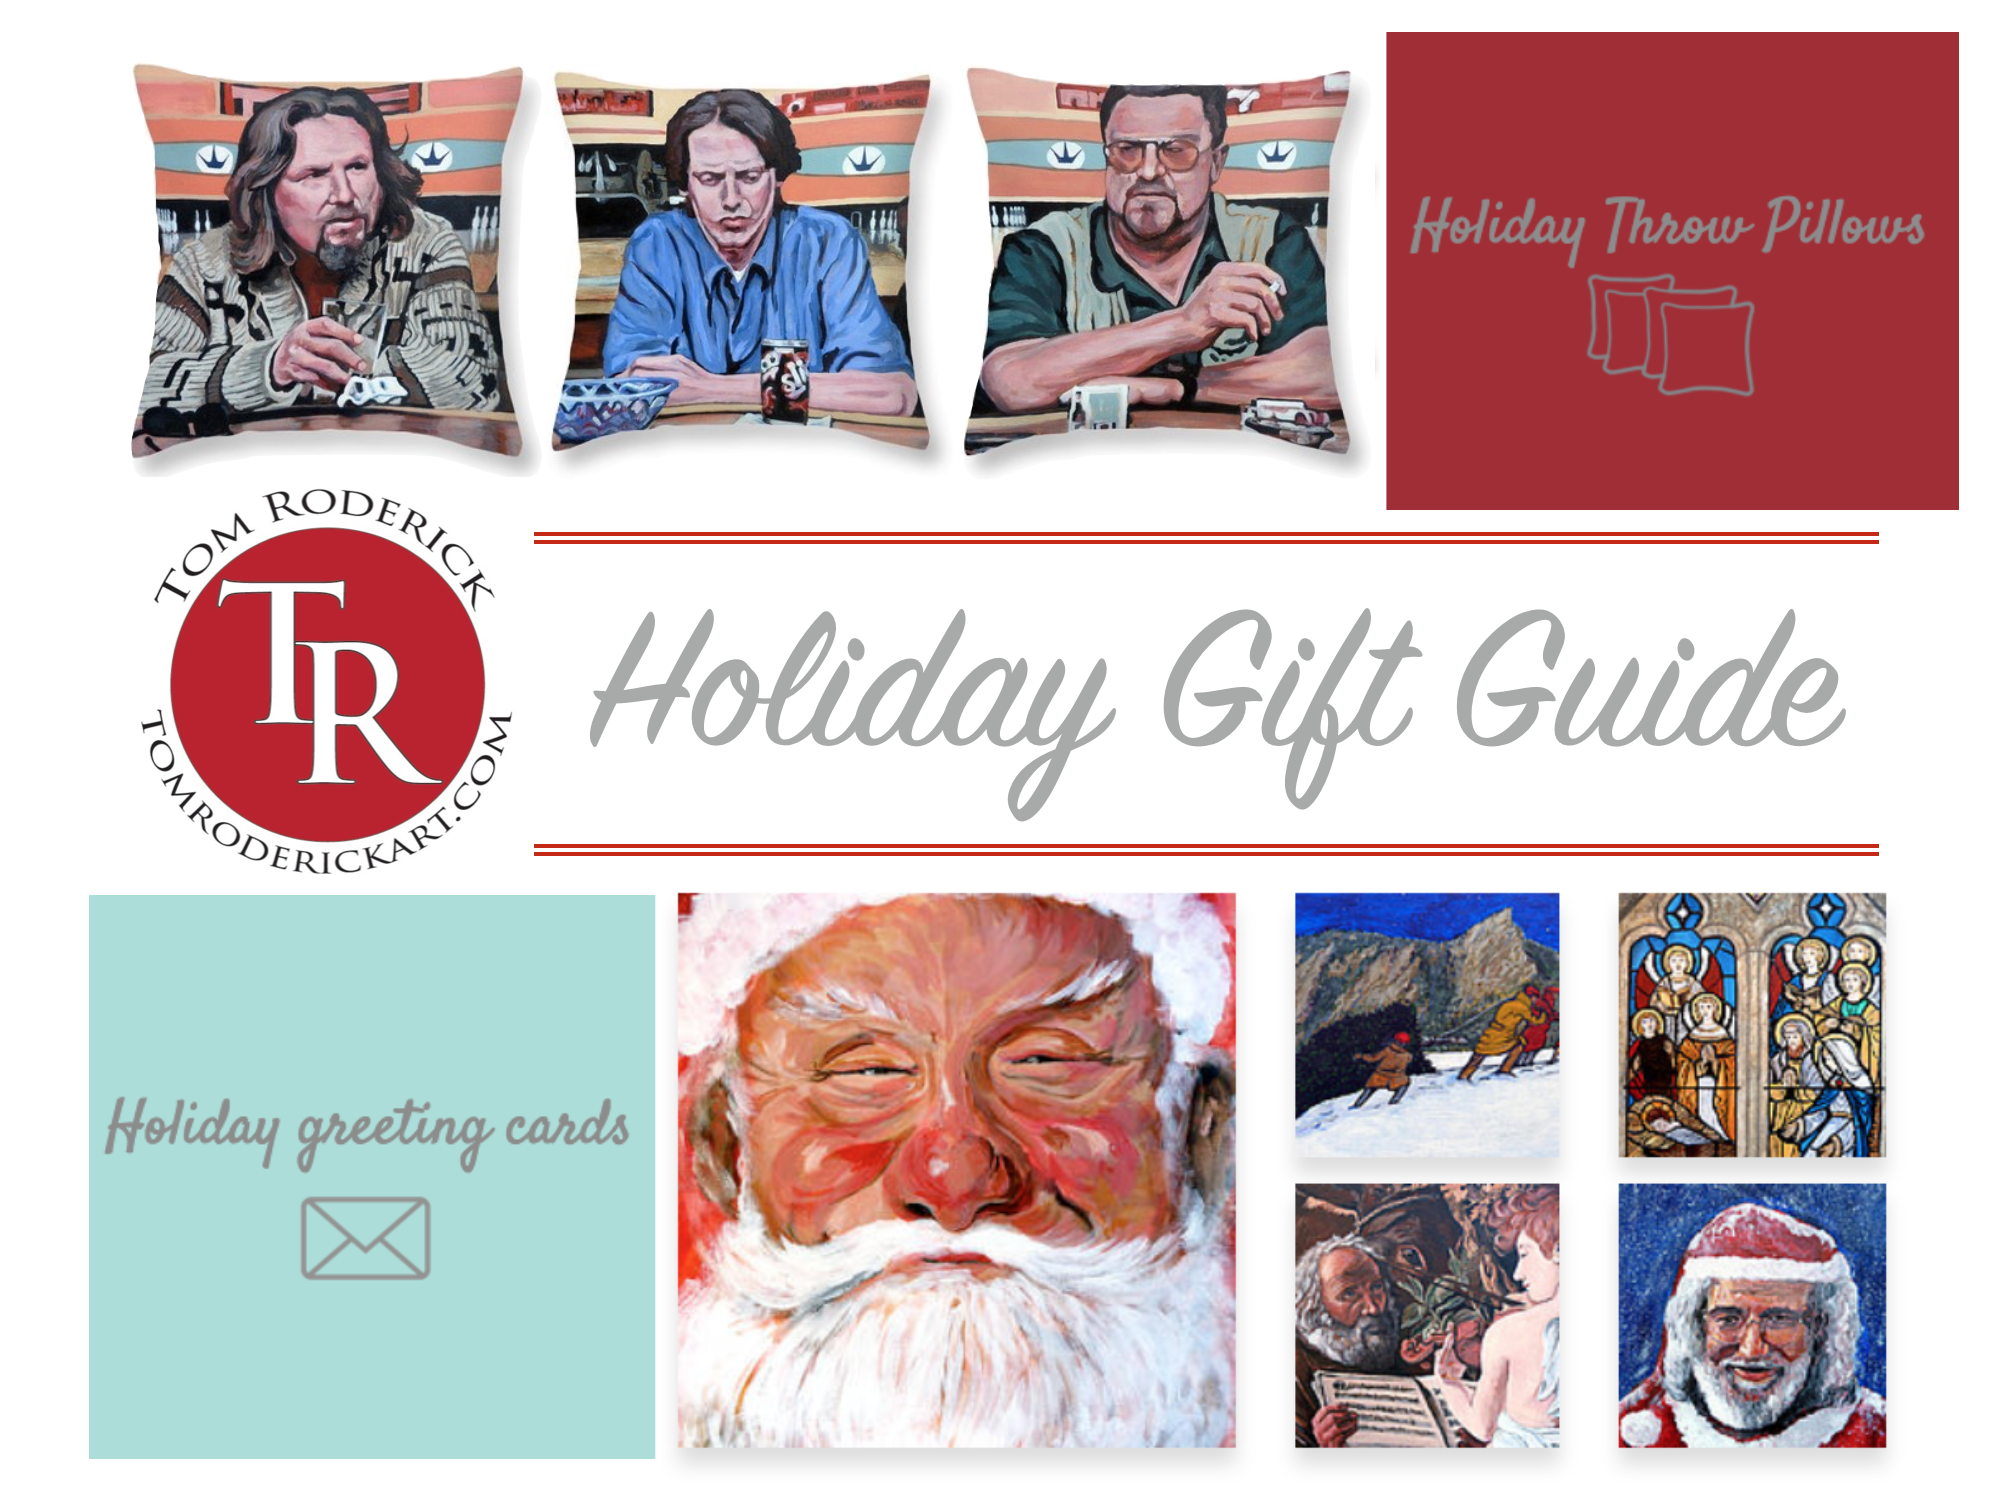 holiday gift guide tom roderick art.png